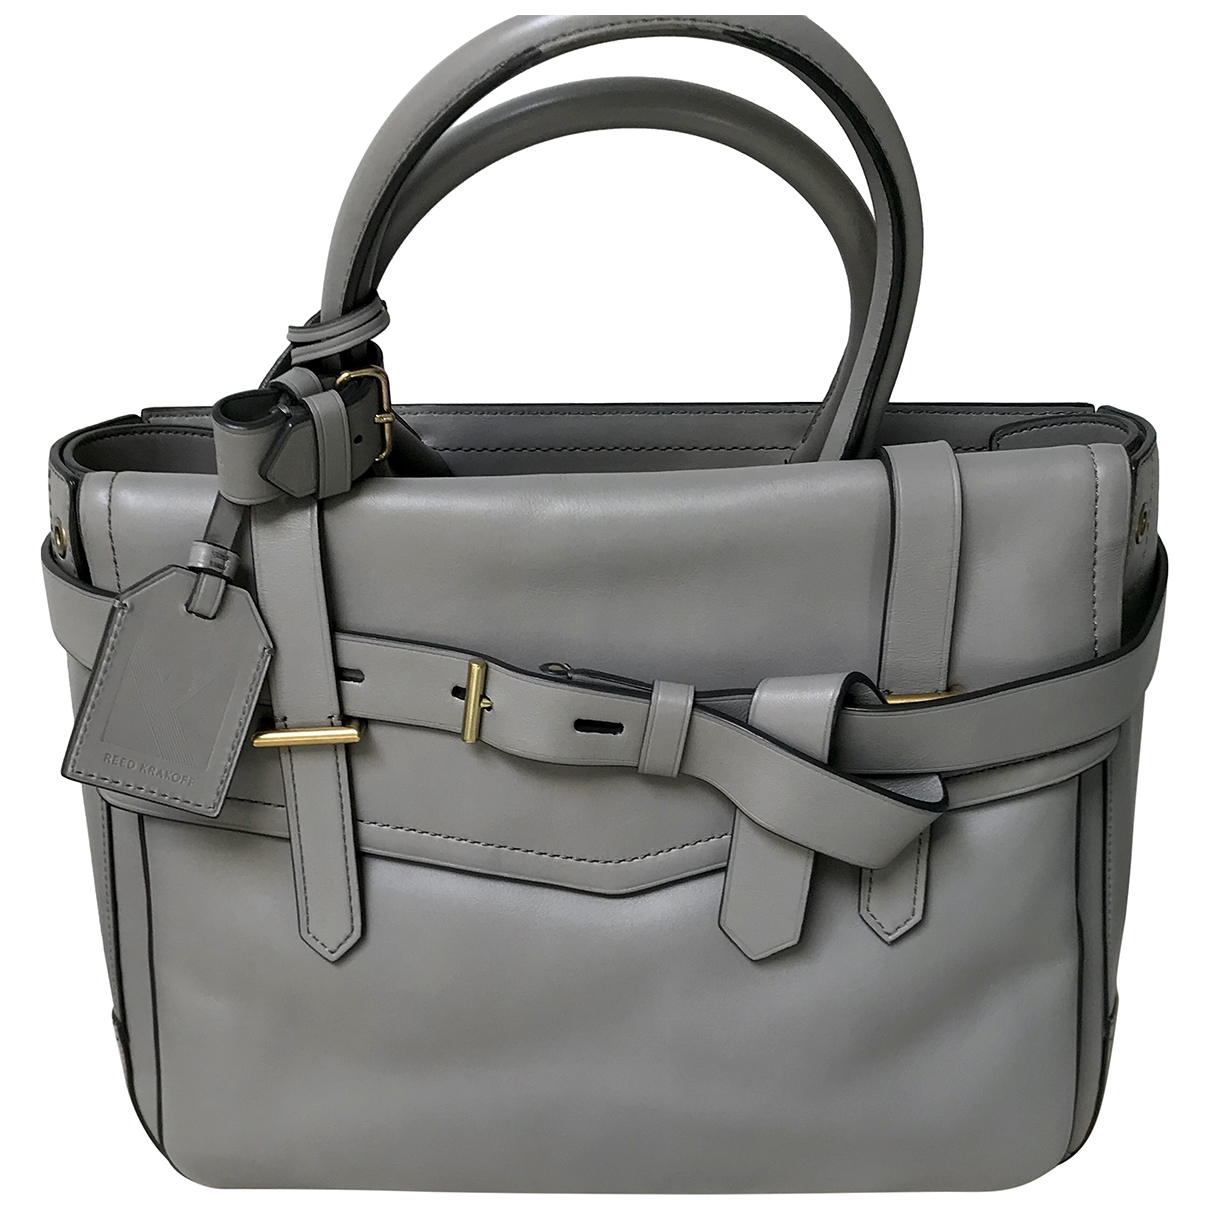 Reed Krakoff \N Grey Leather handbag for Women \N